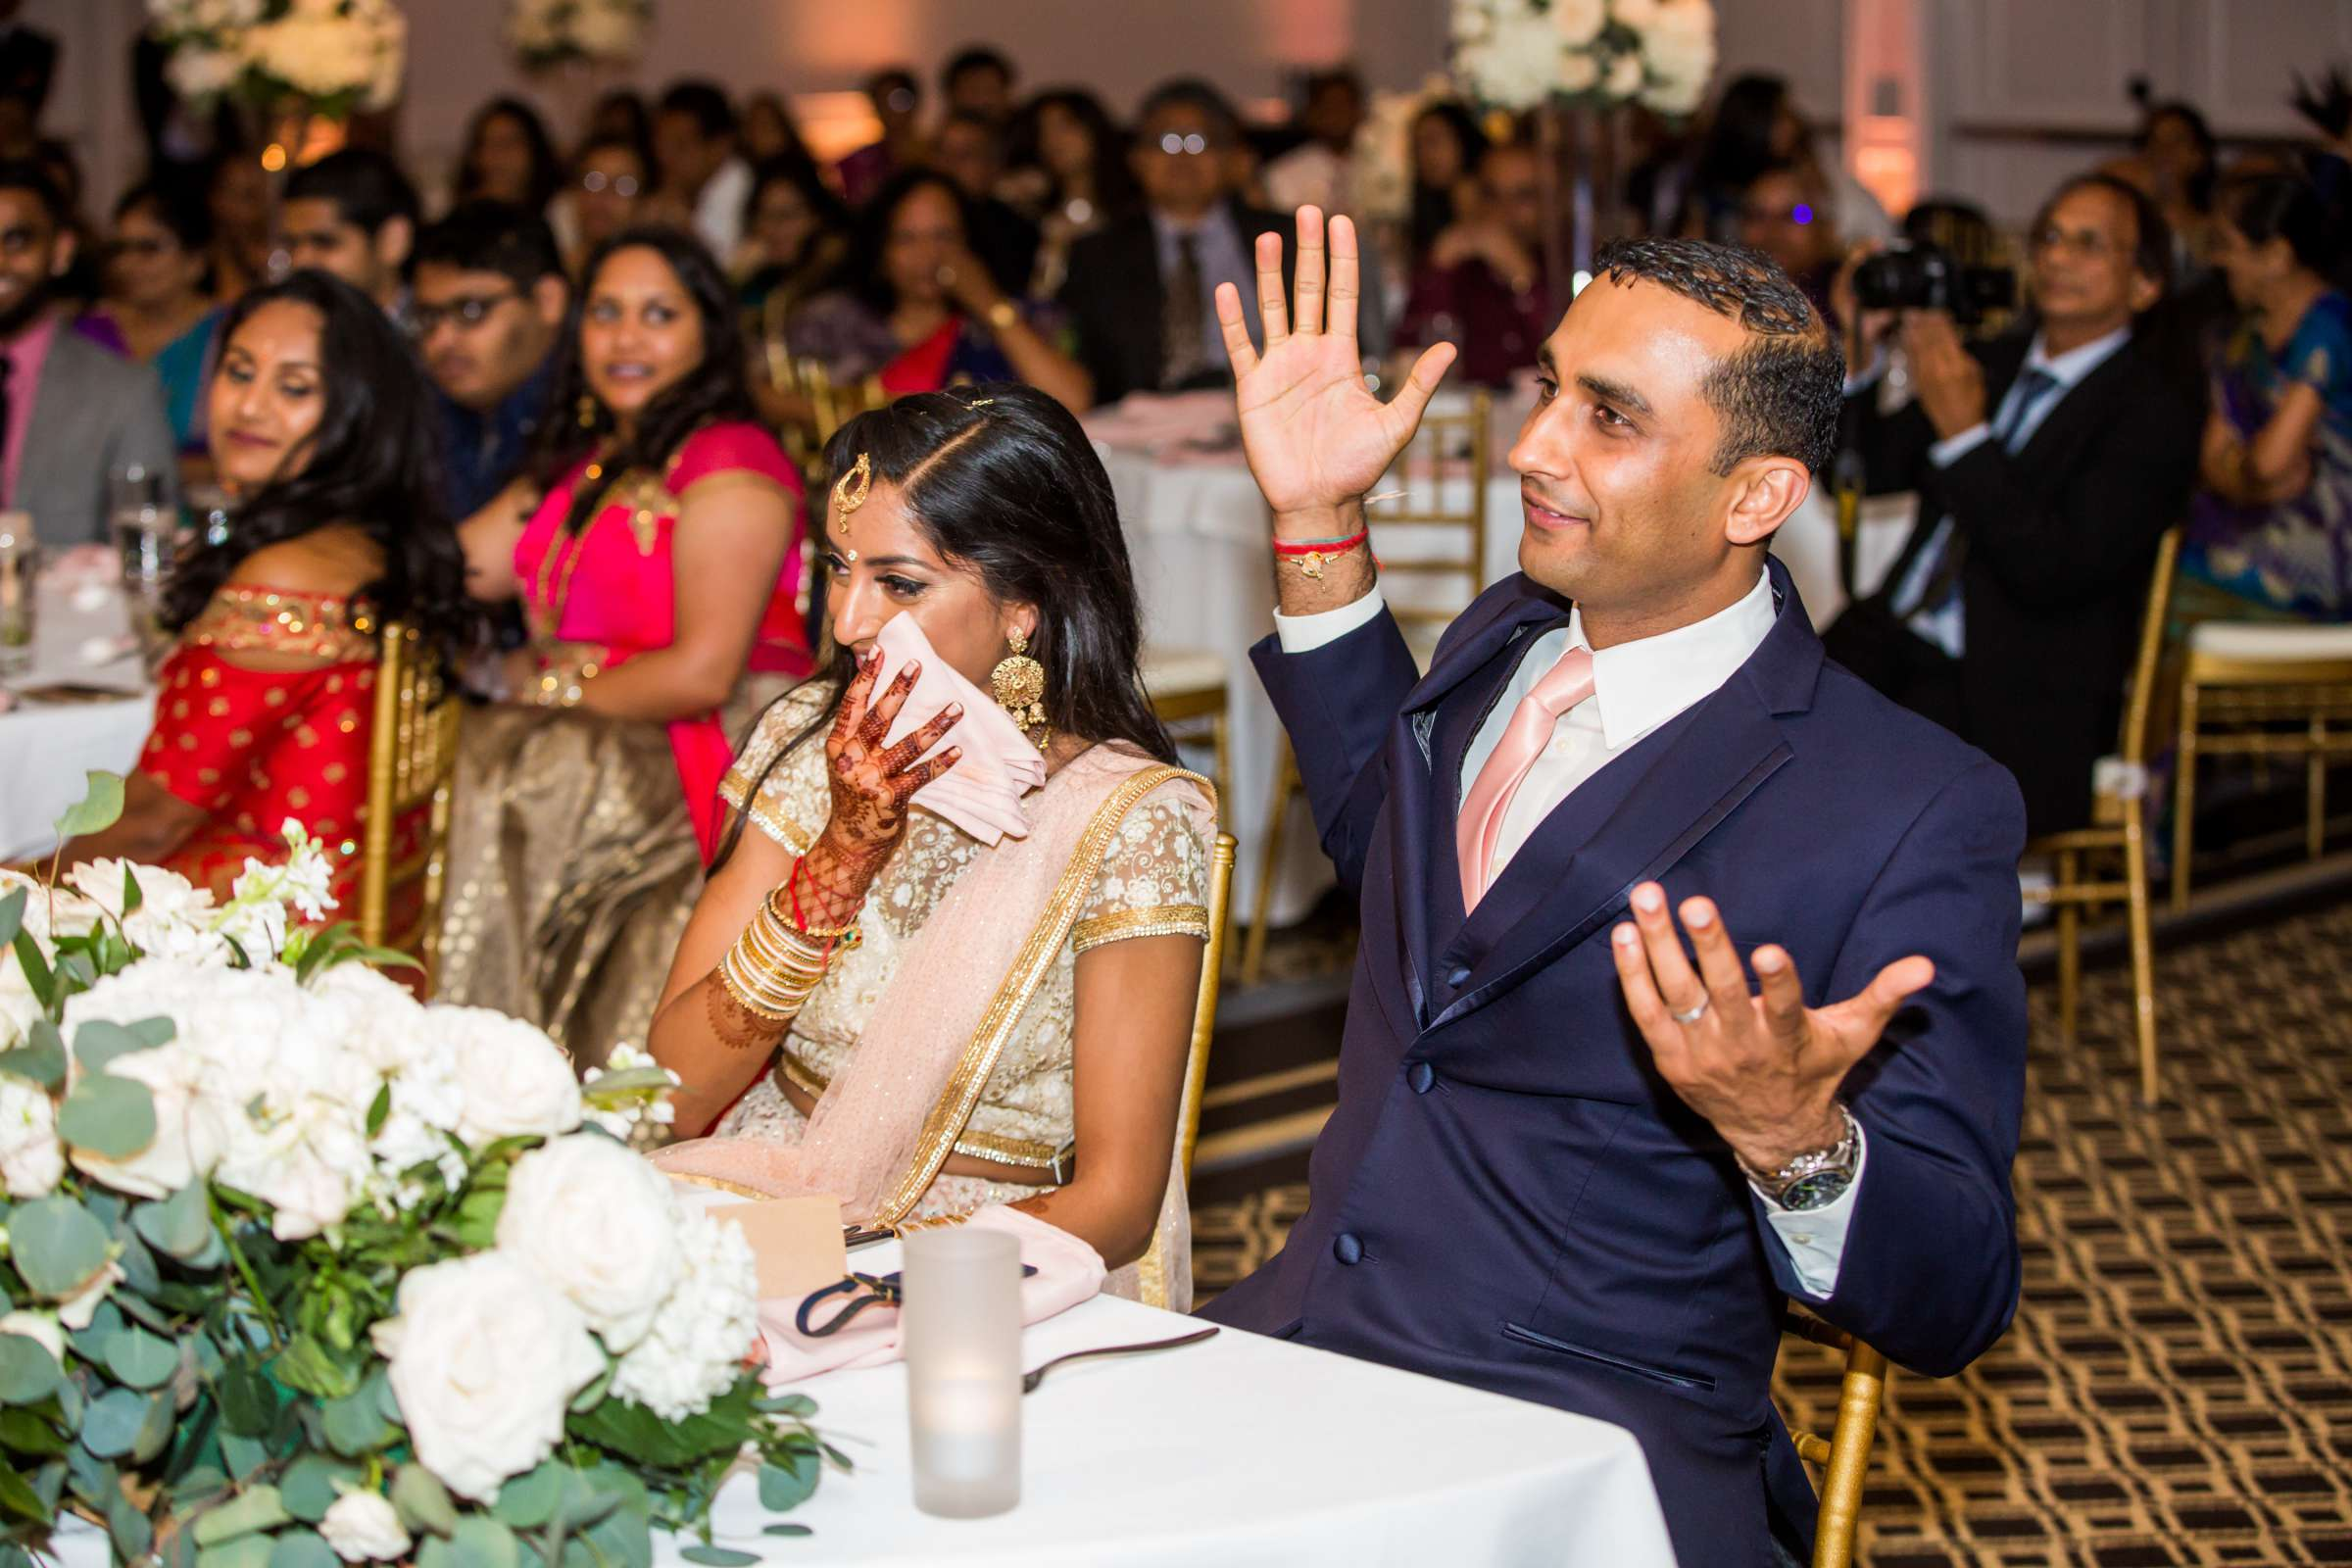 The Westin Carlsbad Resort and Spa Wedding coordinated by Shilpa Patel Events, Ami and Amit Wedding Photo #238 by True Photography